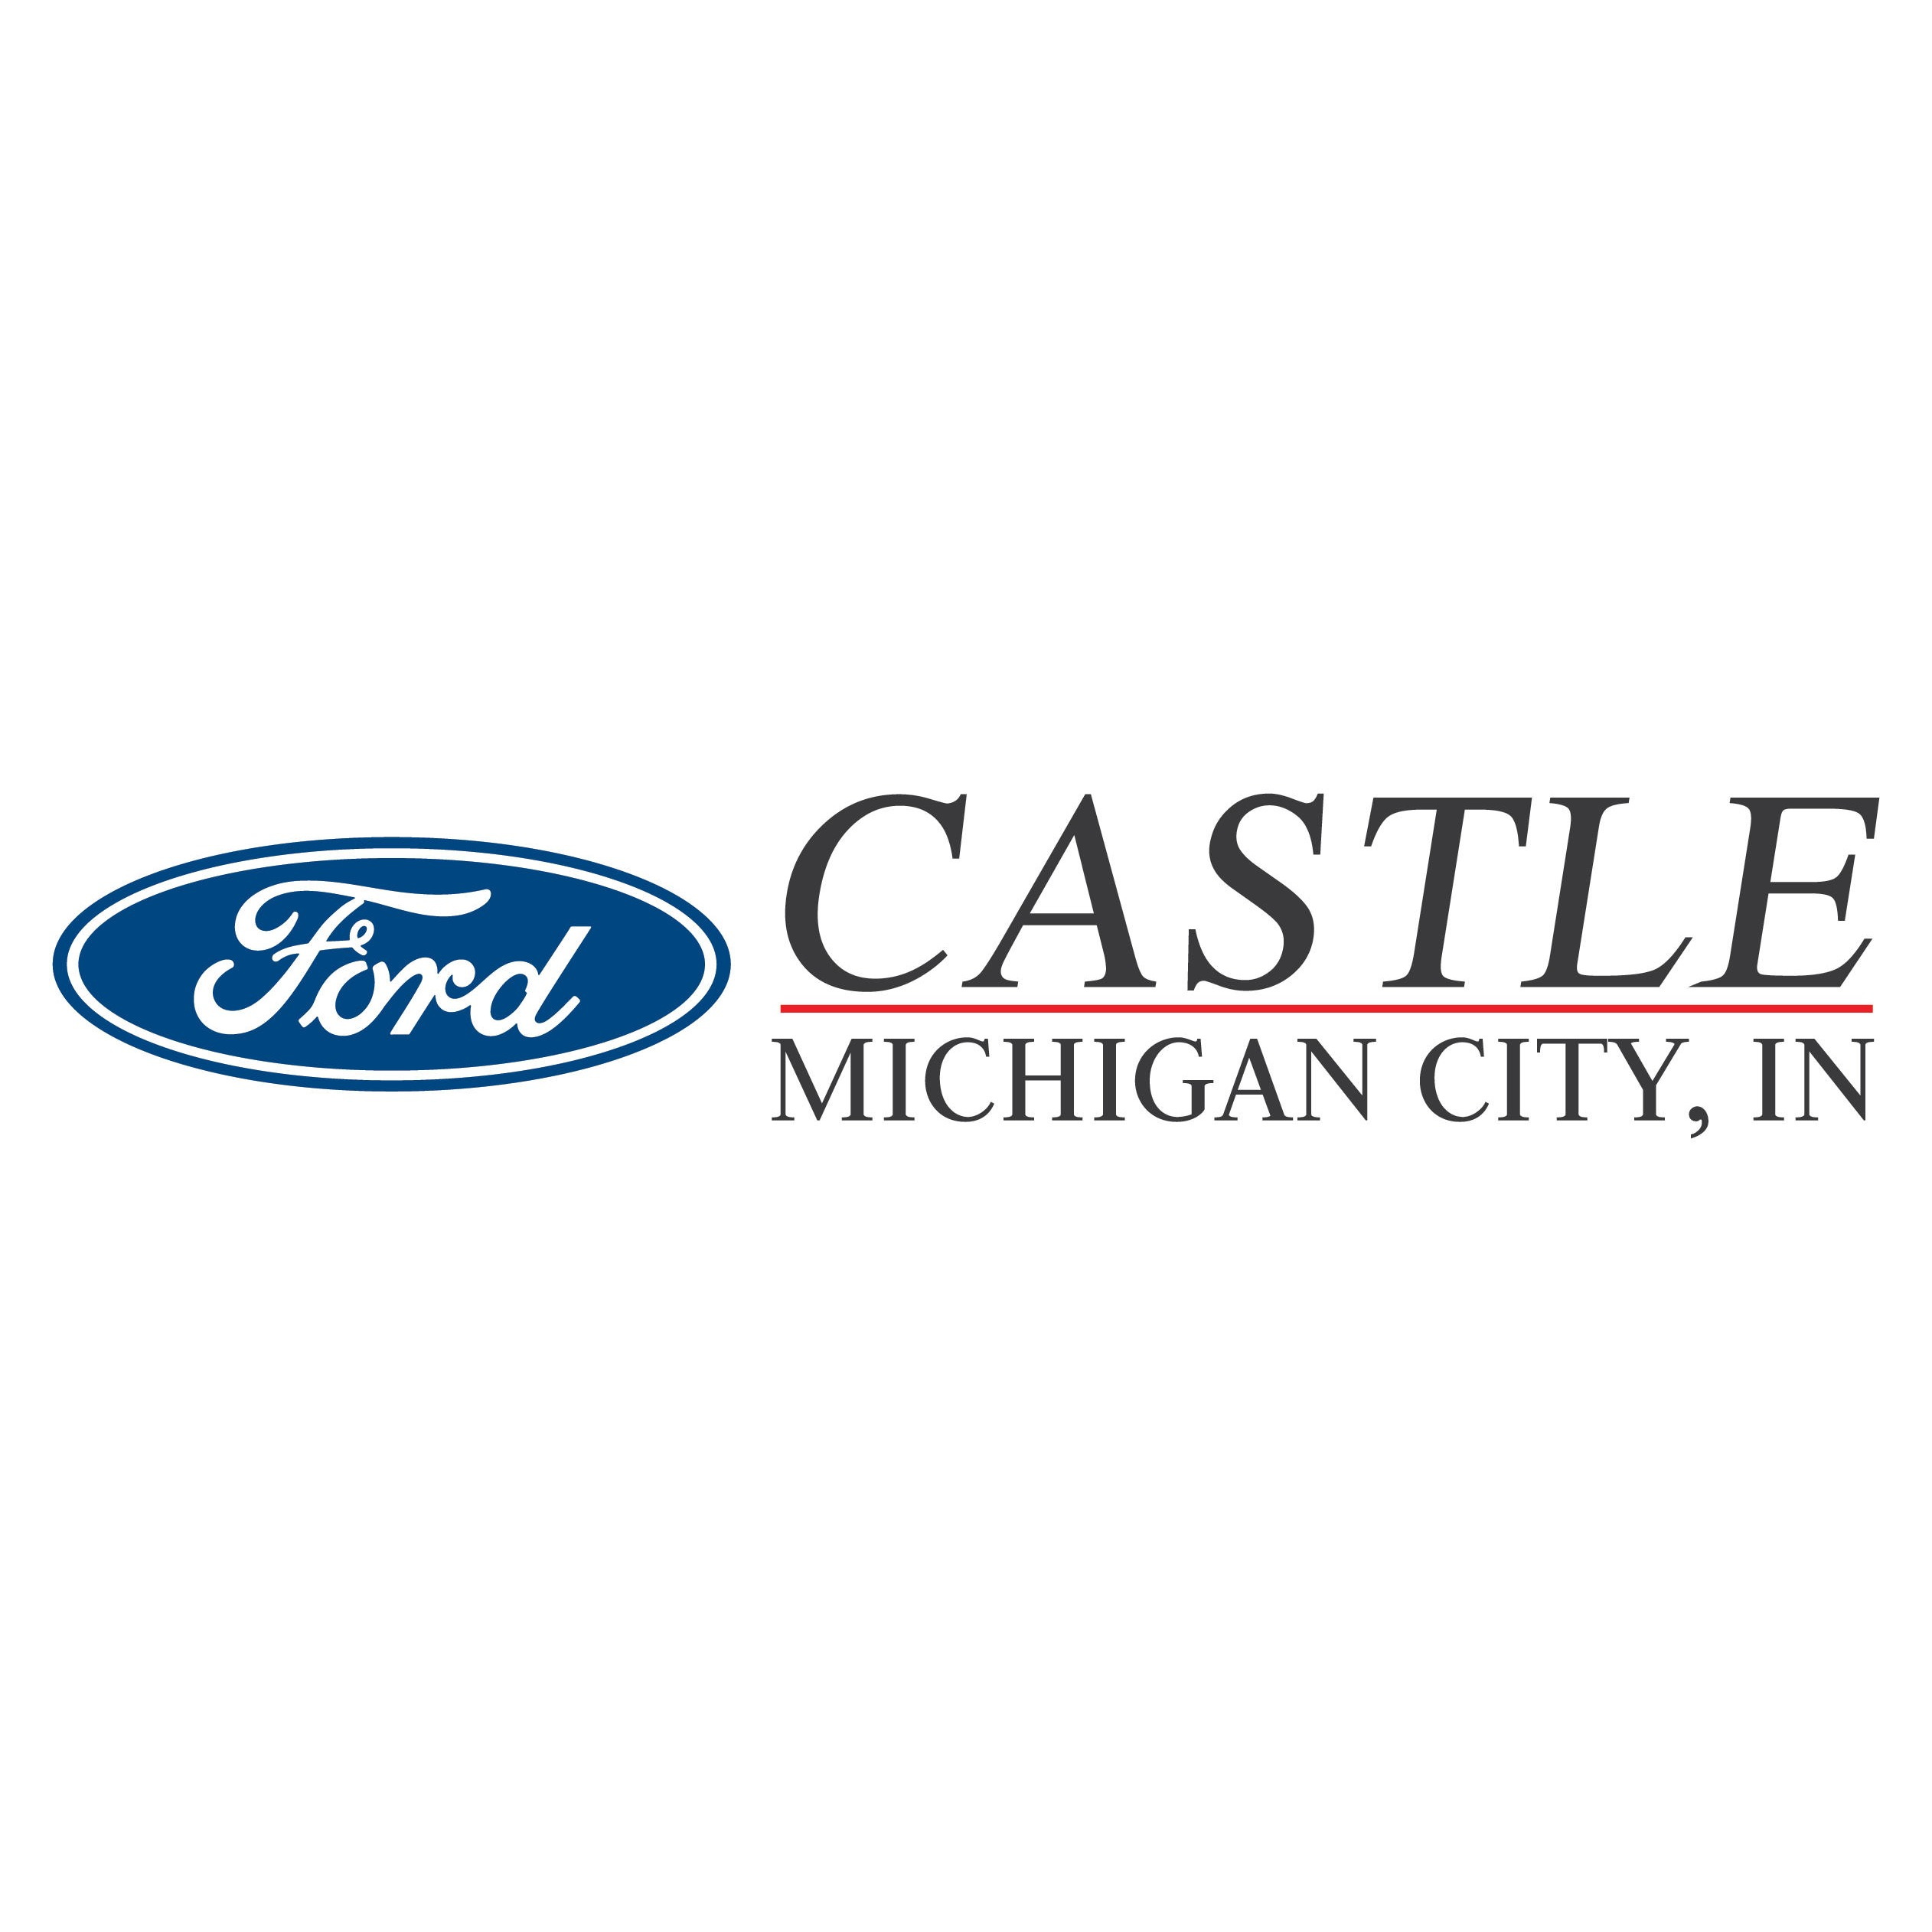 Castle Ford of Michigan City